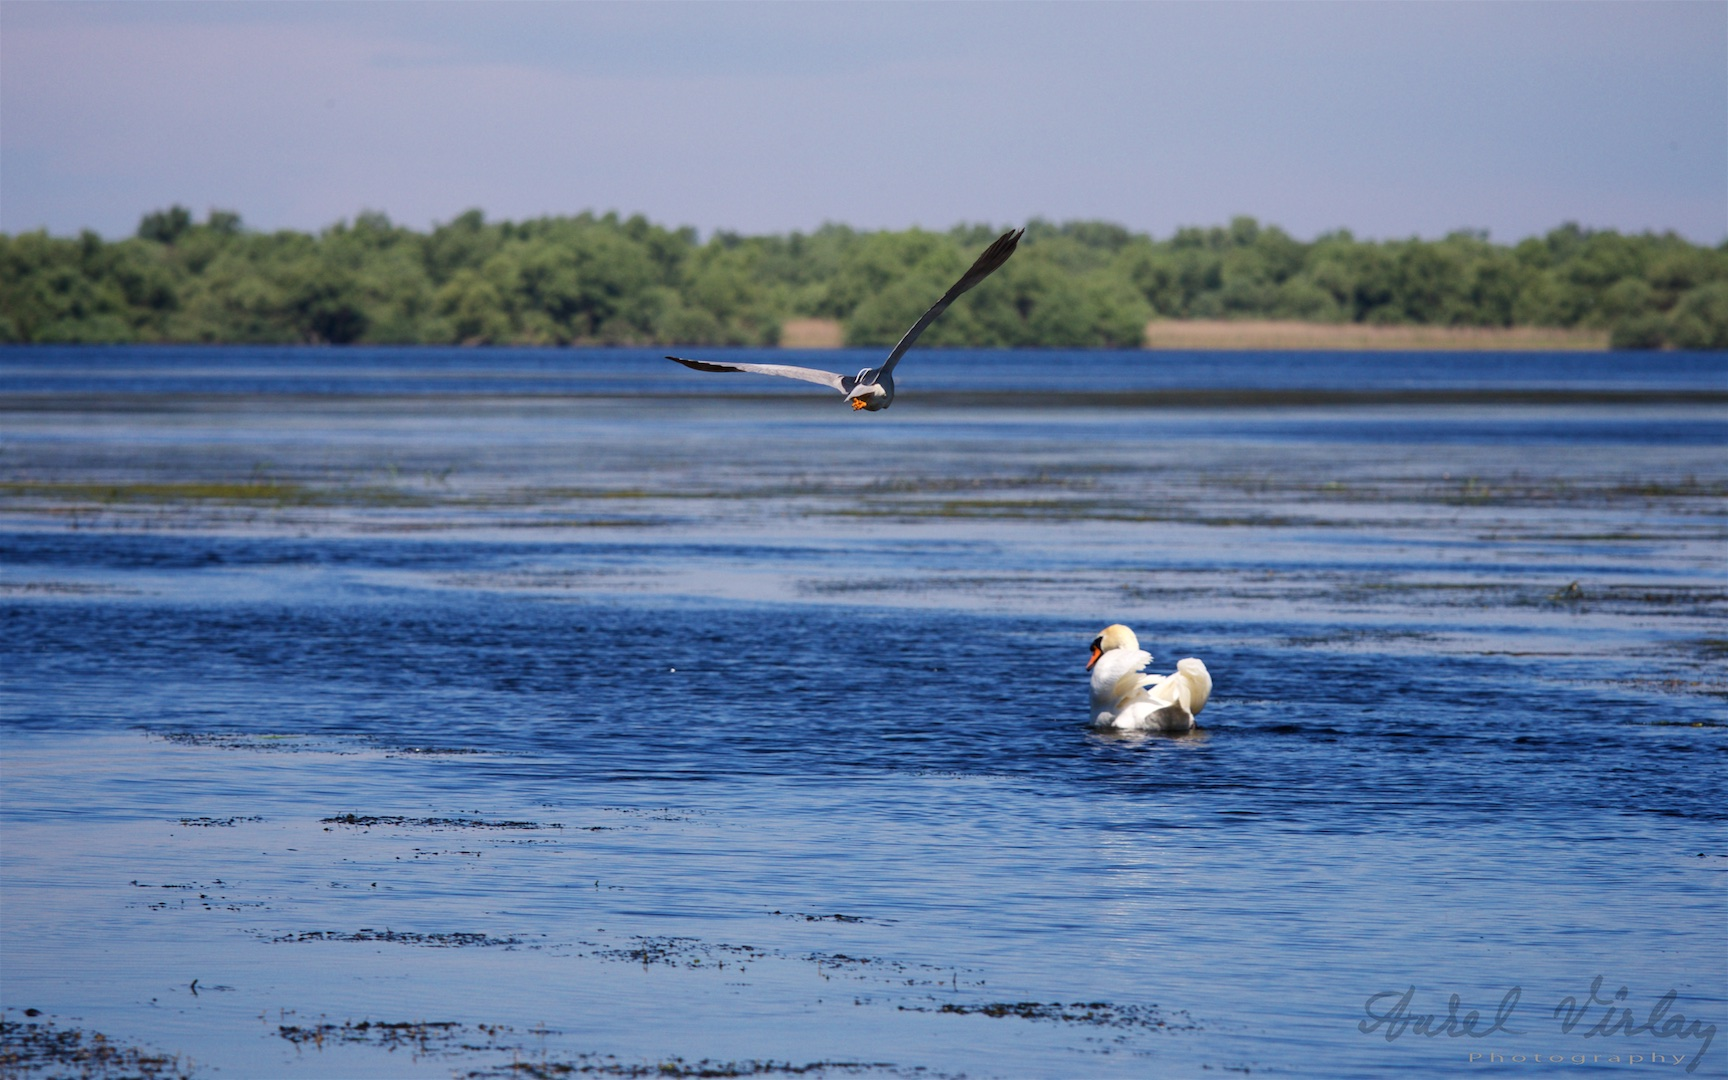 Lazy white swan and wild flying bird - emblematic picture of Danube Delta.